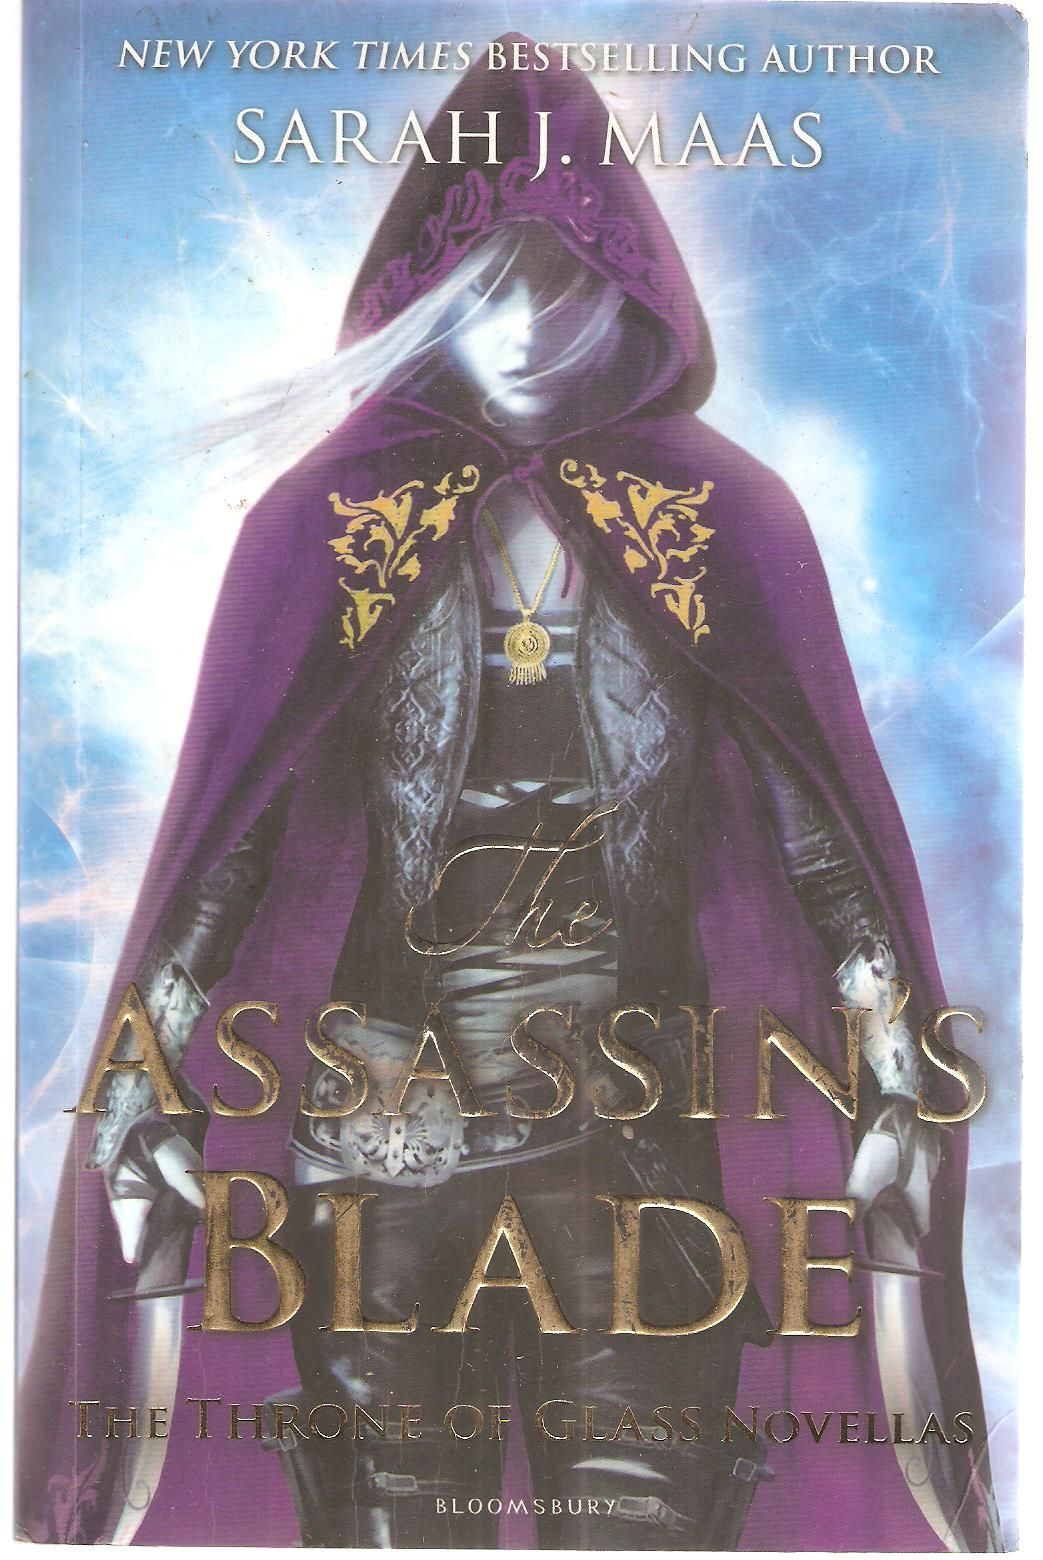 The Assassin's Blade by Sarah J. Maas.